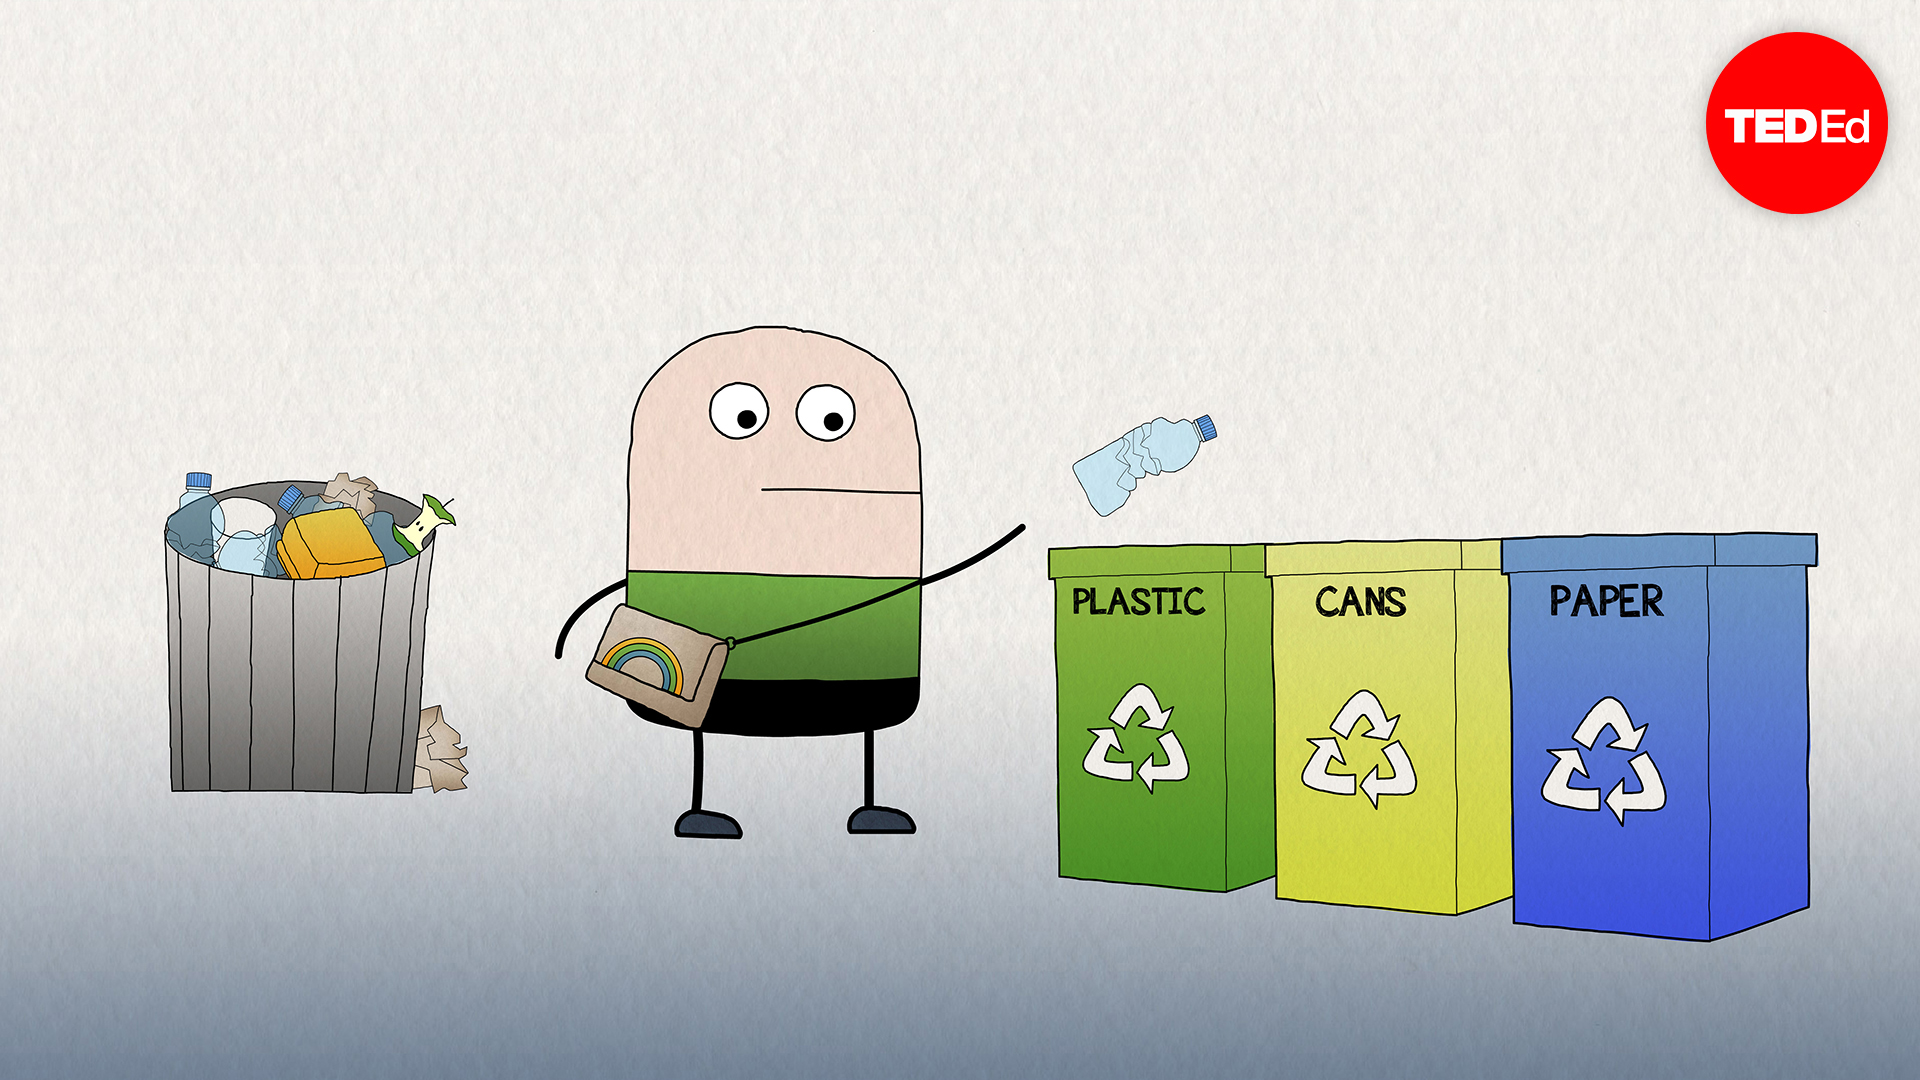 Mike Biddle: We can recycle plastic | TED Talk